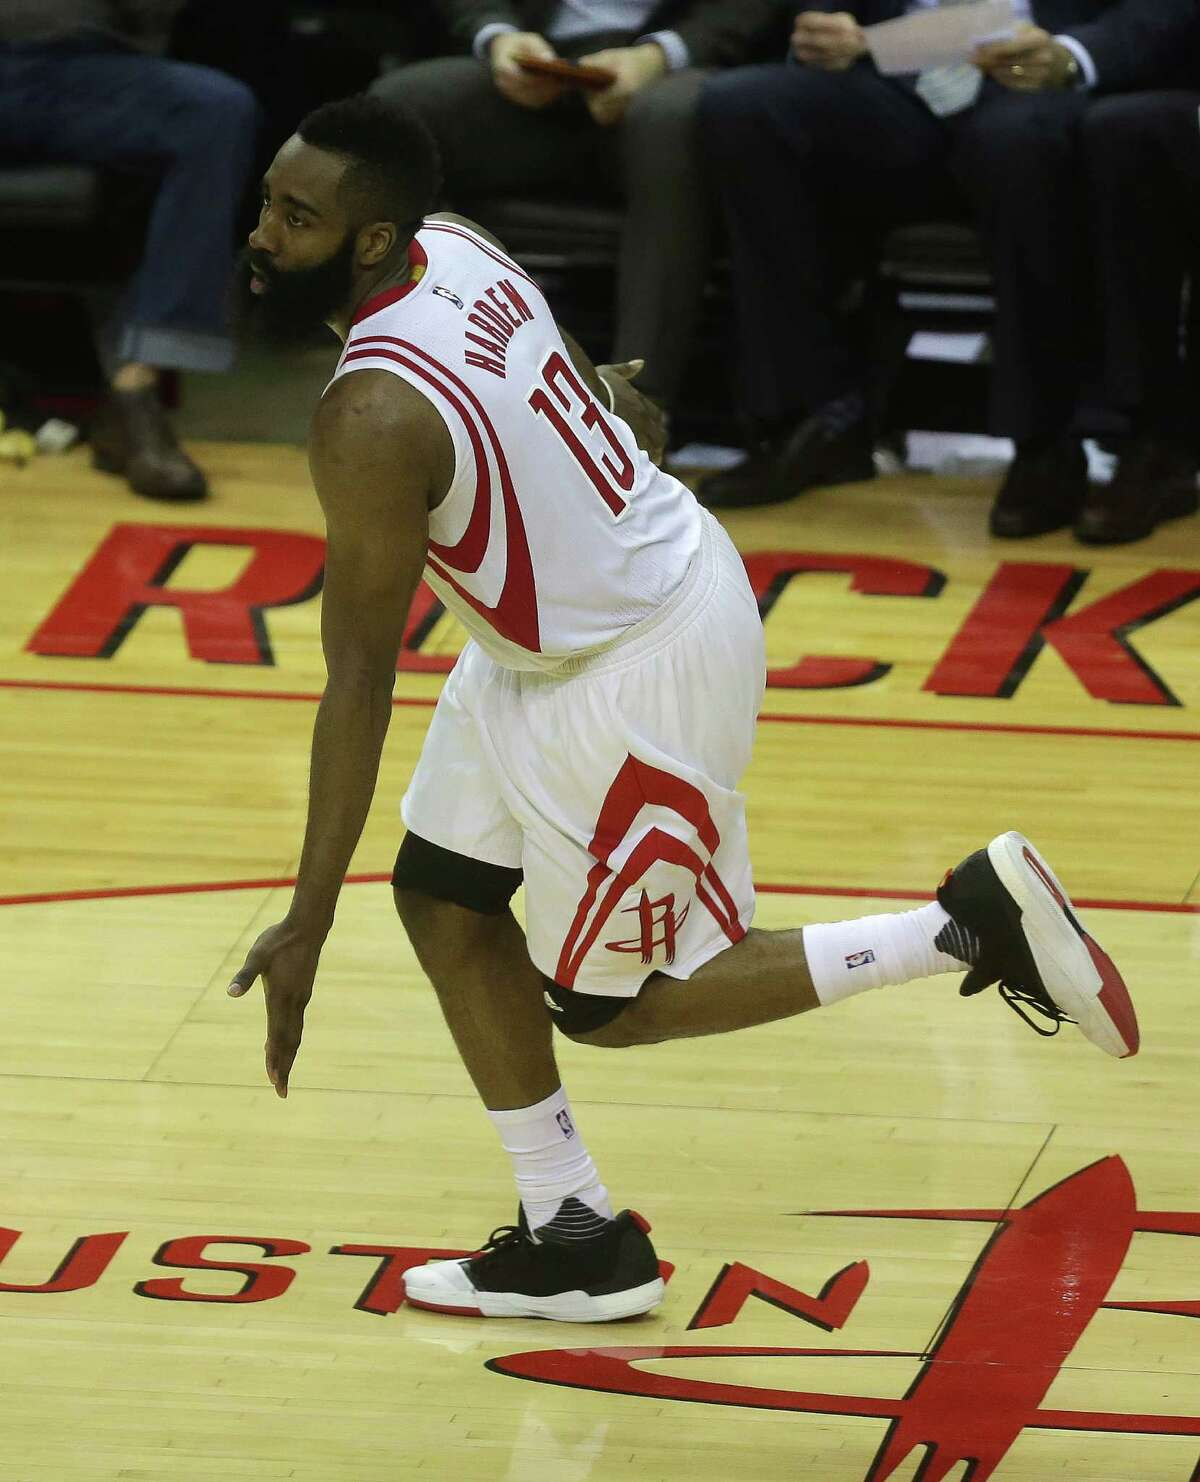 Houston Rockets guard James Harden (13) reacts after his basket during the second half in game three of a first-round NBA playoffs series at Toyota Center, Thursday, April 21, 2016, in Houston.